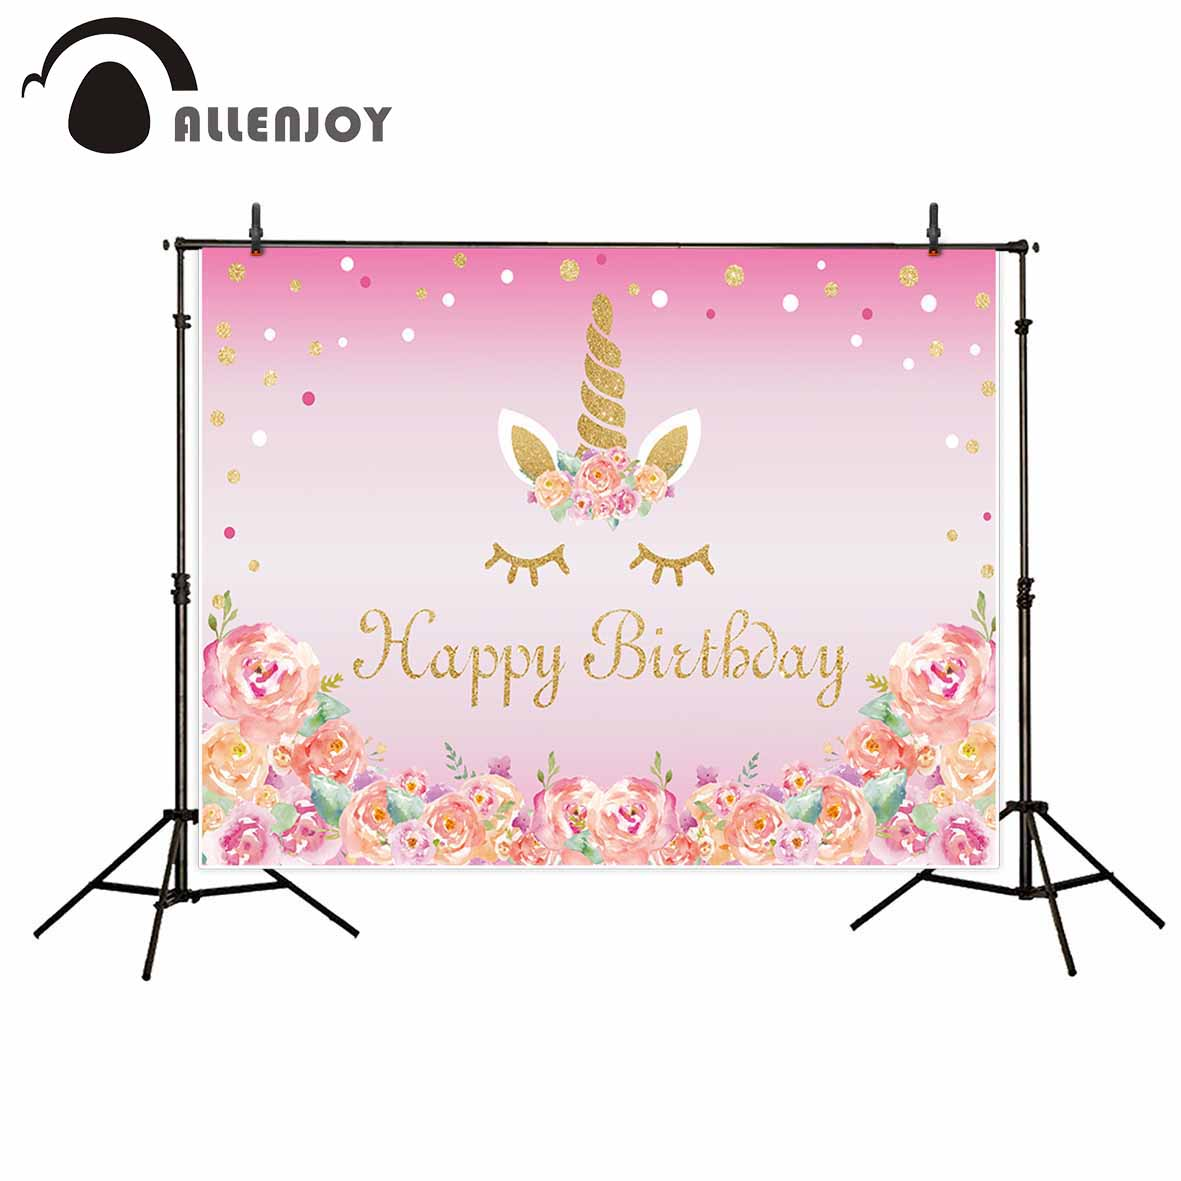 Allenjoy new photographic background Beautiful girl flower pink birthday unicorn backdrop photocall professional customize